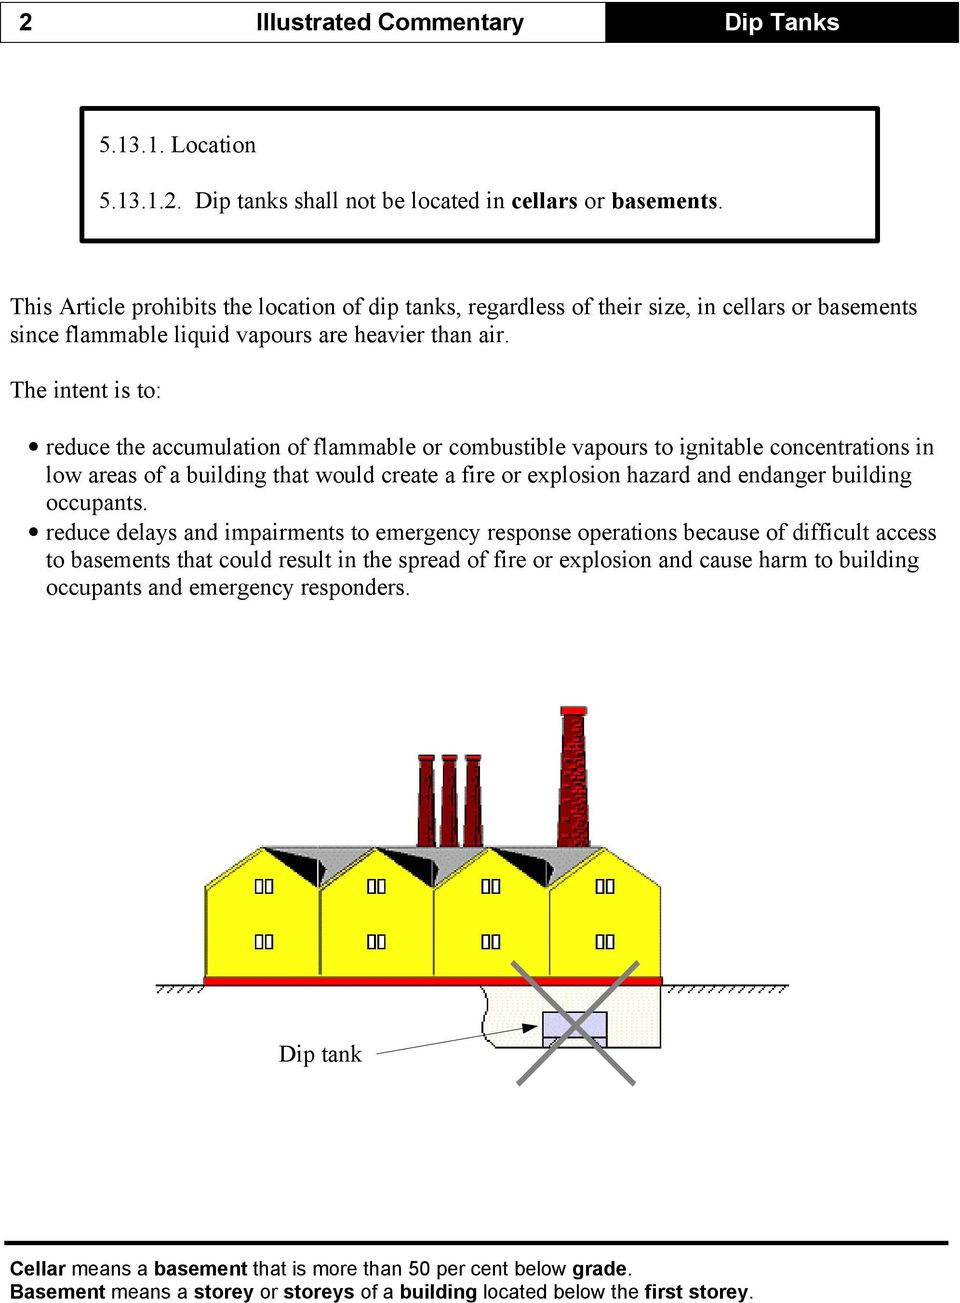 The intent is to: reduce the accumulation of flammable or combustible vapours to ignitable concentrations in low areas of a building that would create a fire or explosion hazard and endanger building